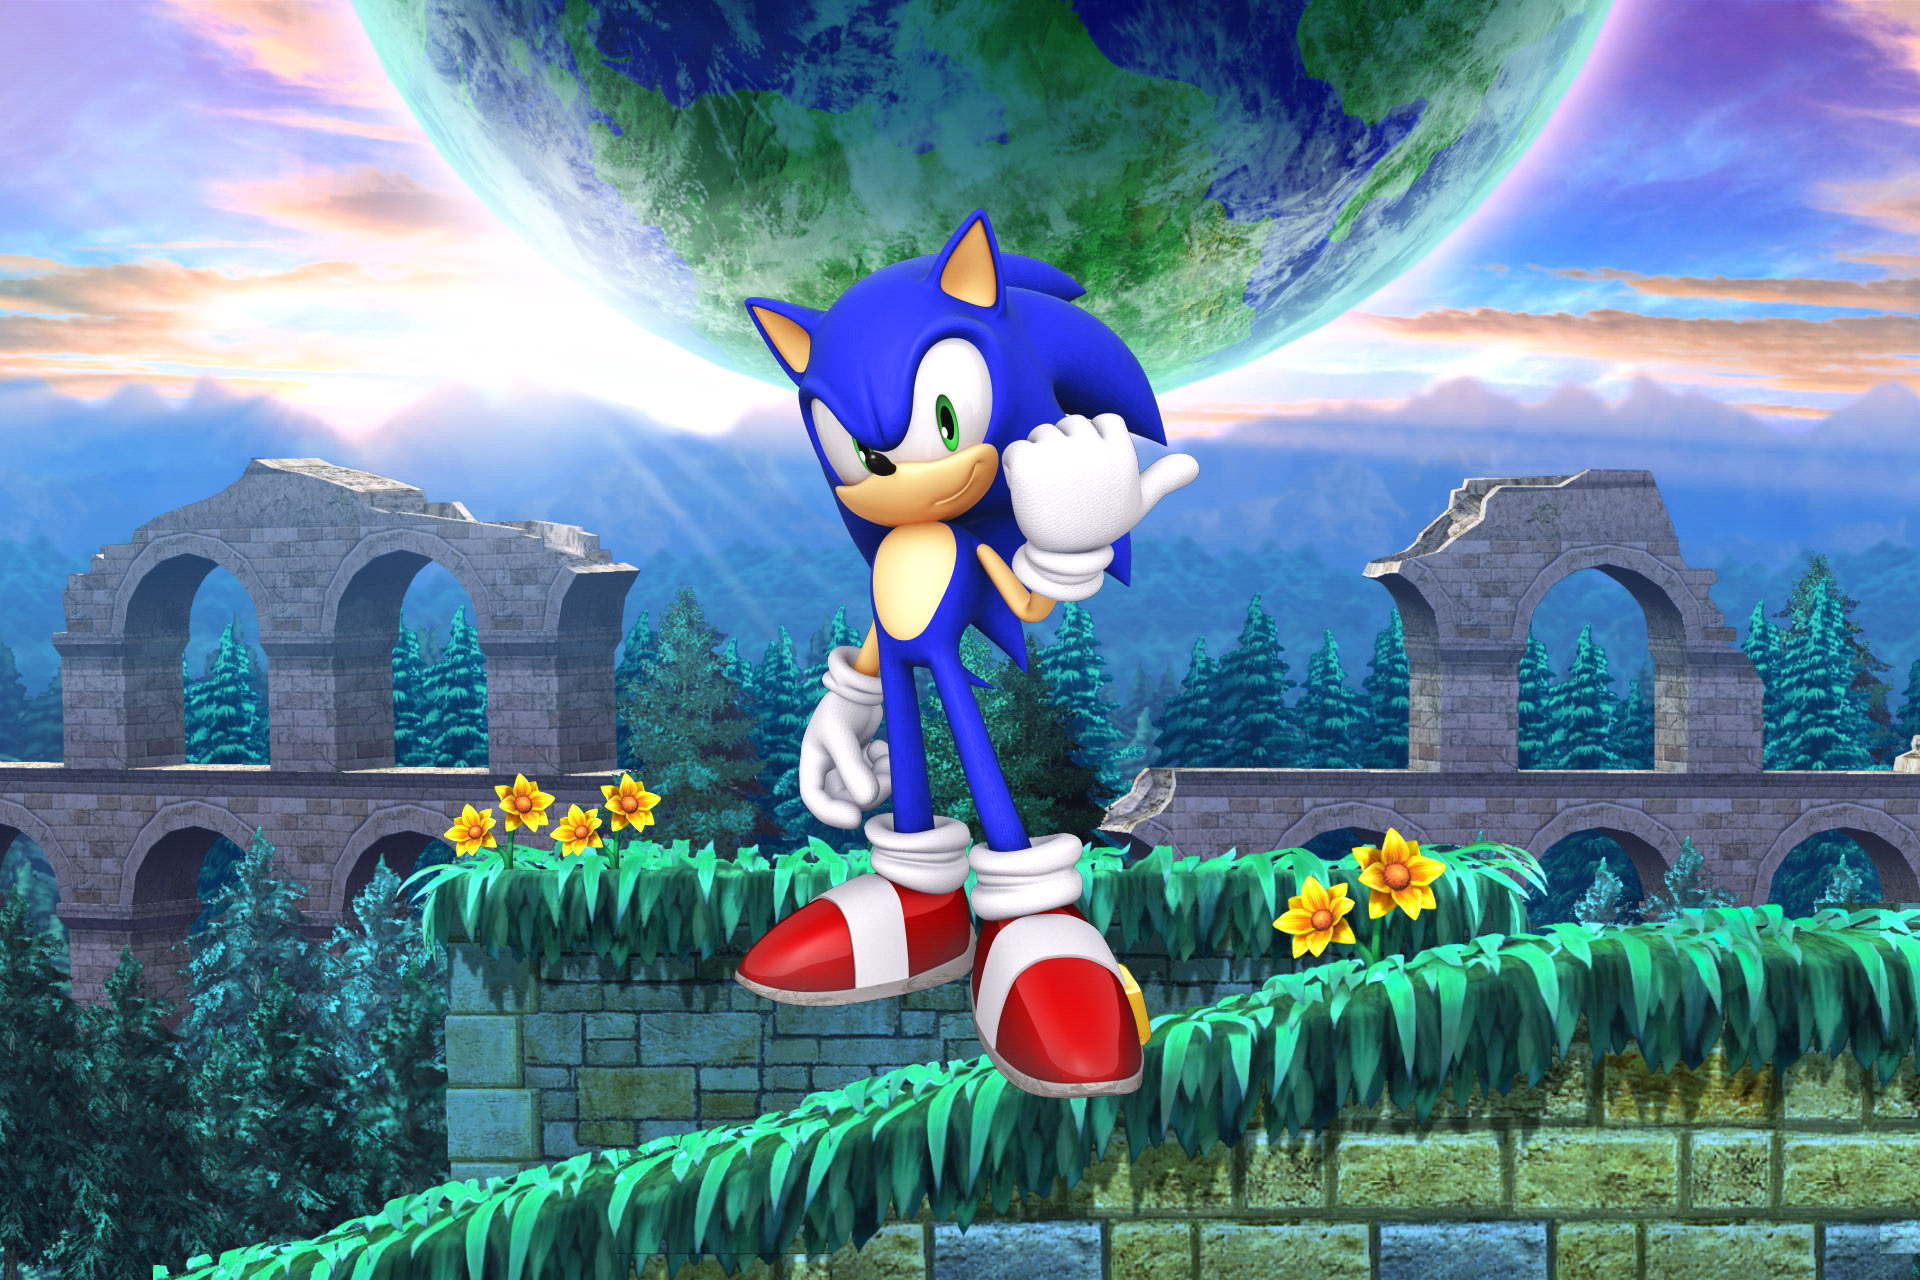 1920x1280 » Sonic the Hedgehog 4: Episode II » Sonic the Hedgehog